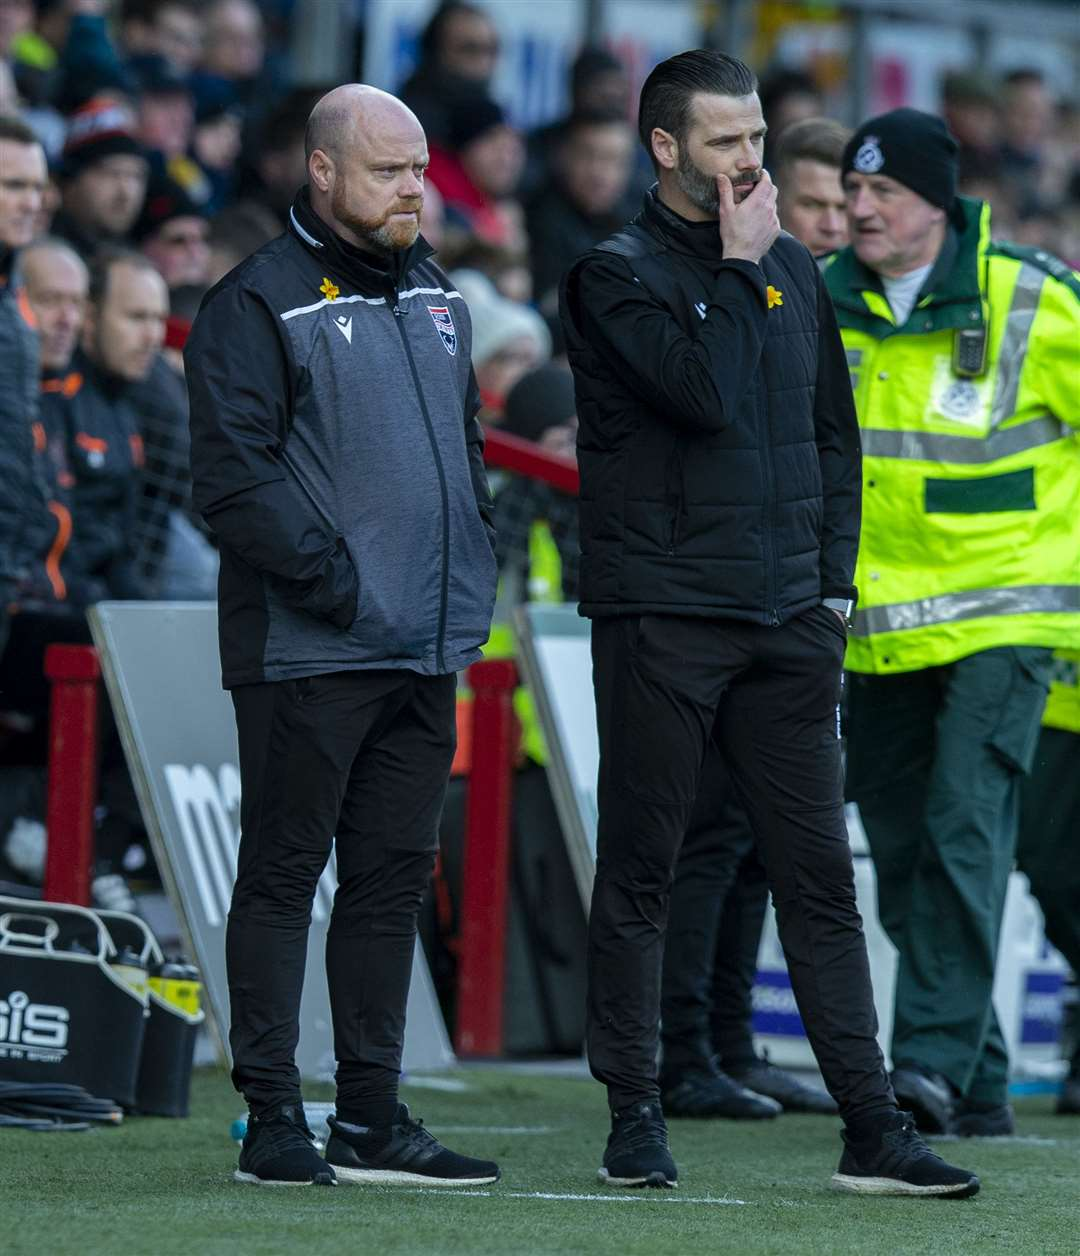 Ross County co-managers Steven Ferguson and Stuart Kettlewell have steered the side to safety. Picture: Ken Macpherson